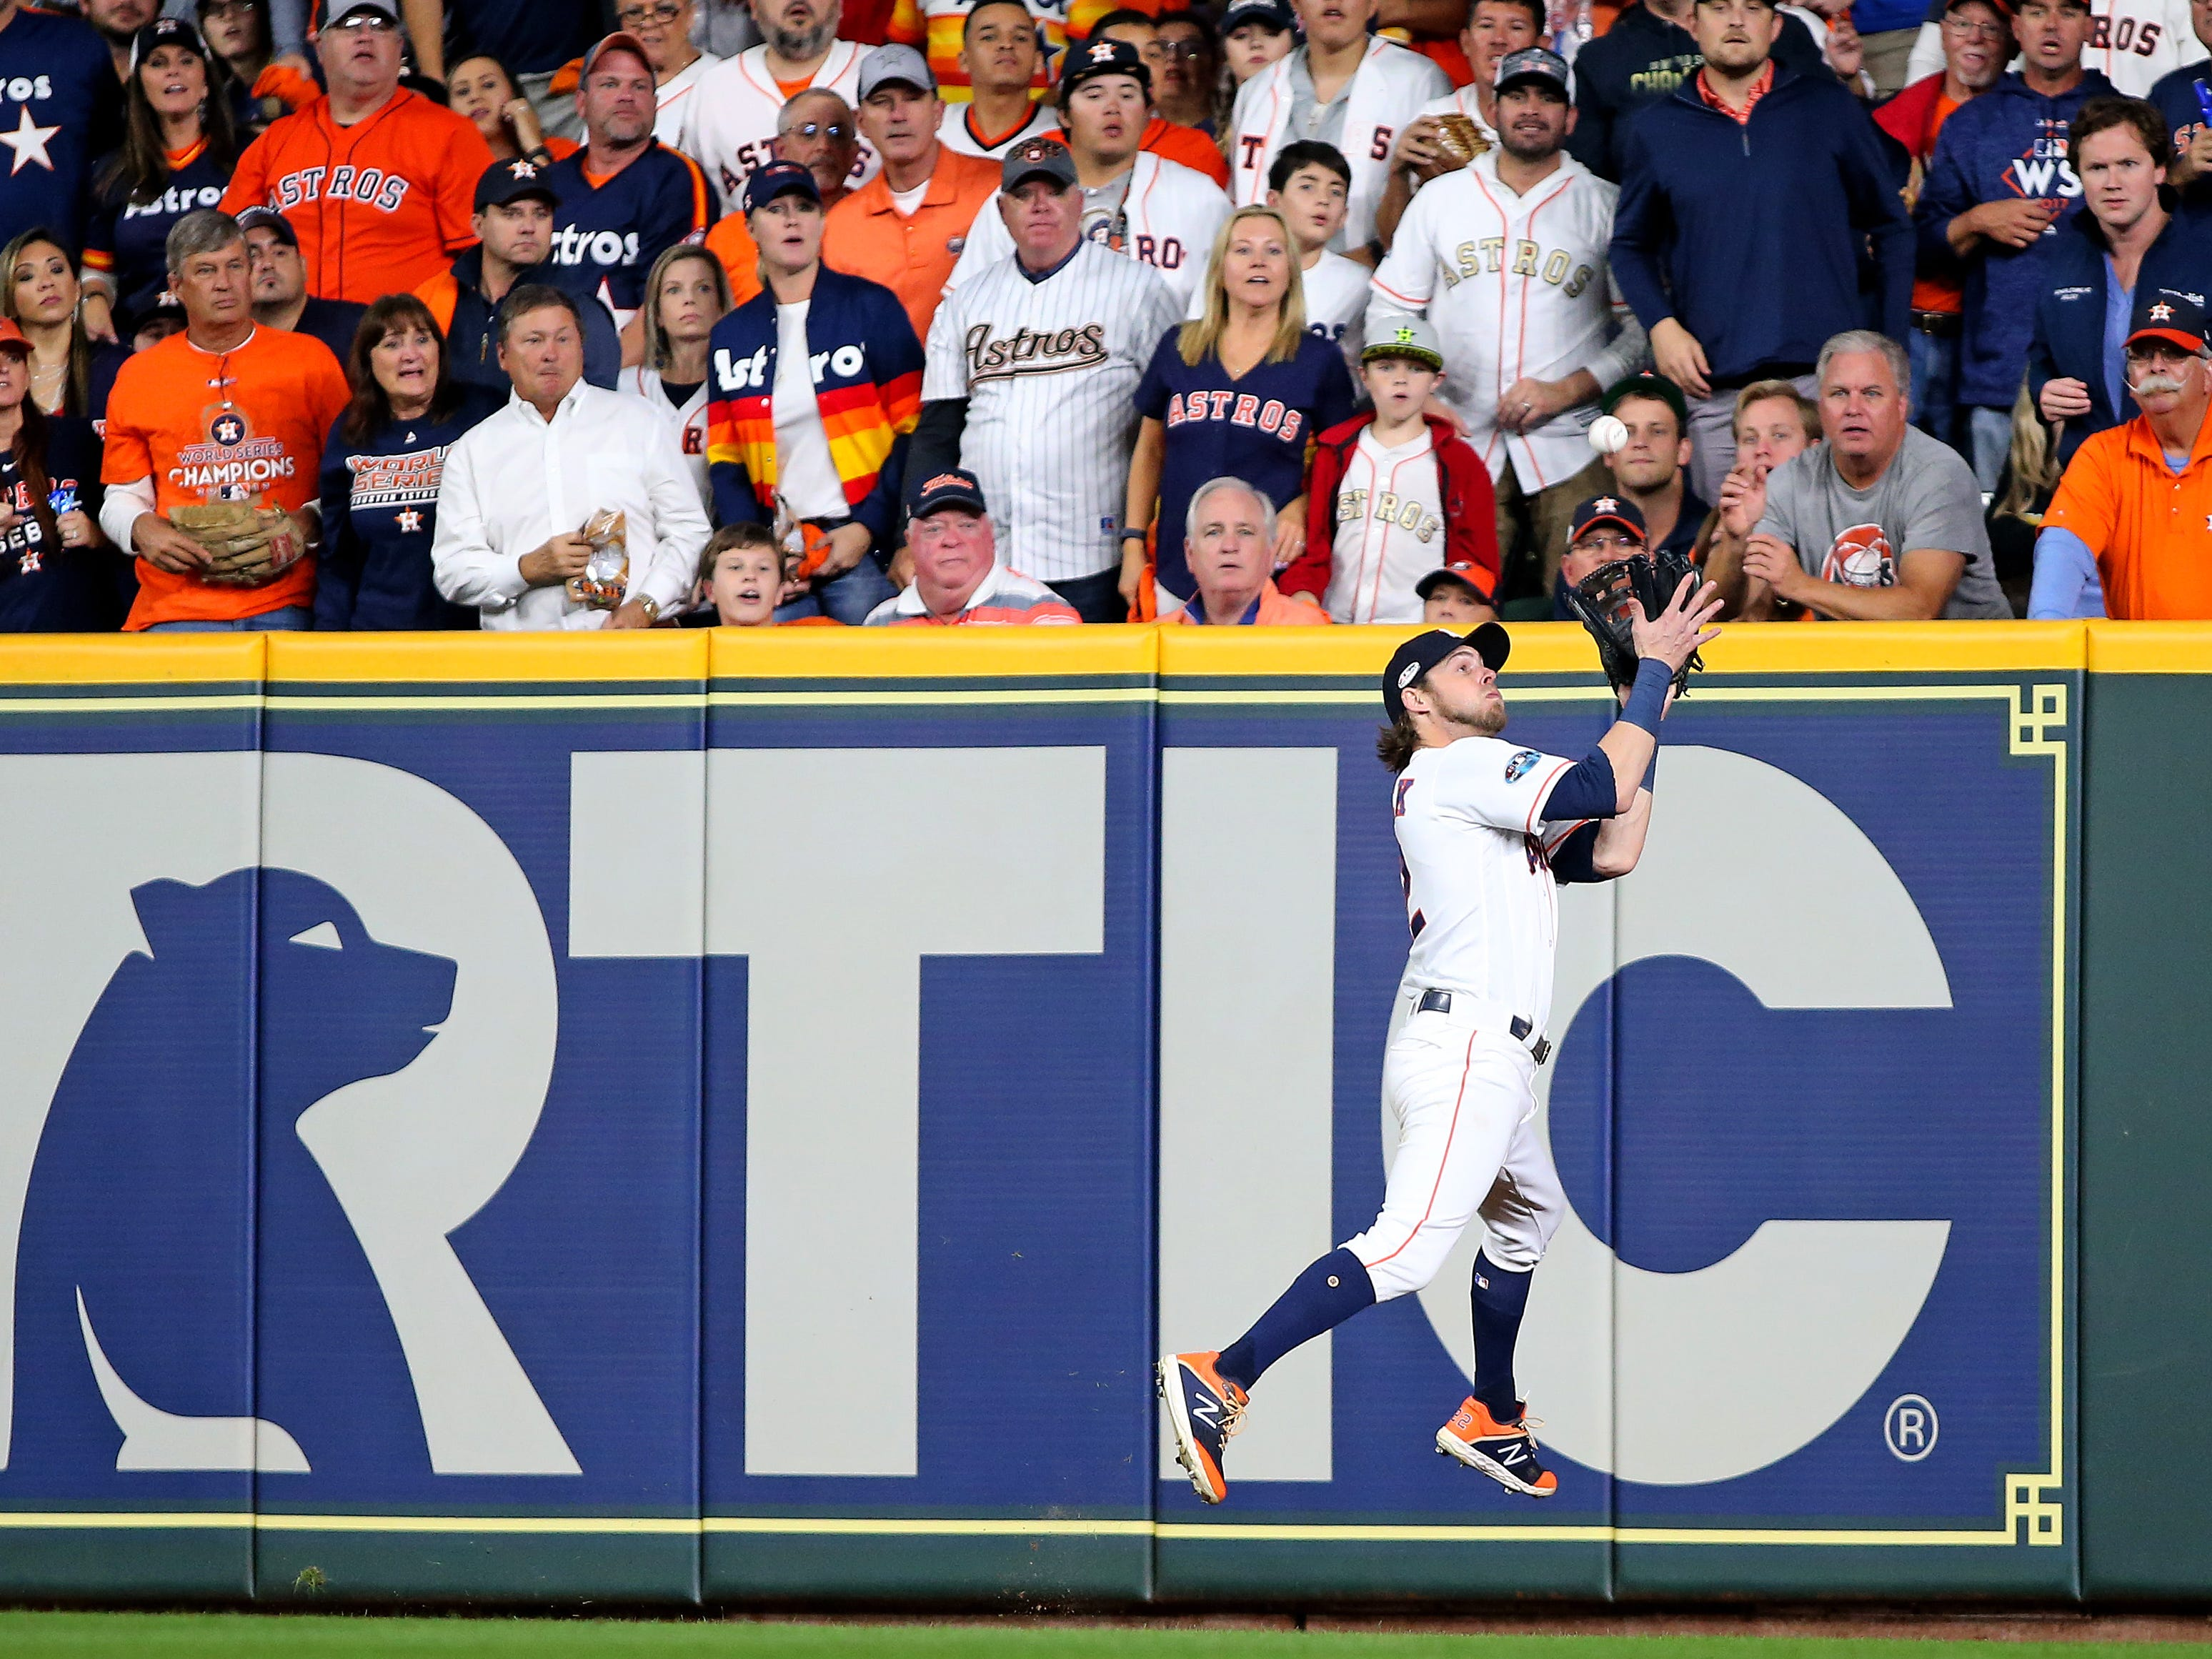 ALCS Game 3: Astros right fielder Josh Reddick makes an impressive catch for an out in the fourth inning.